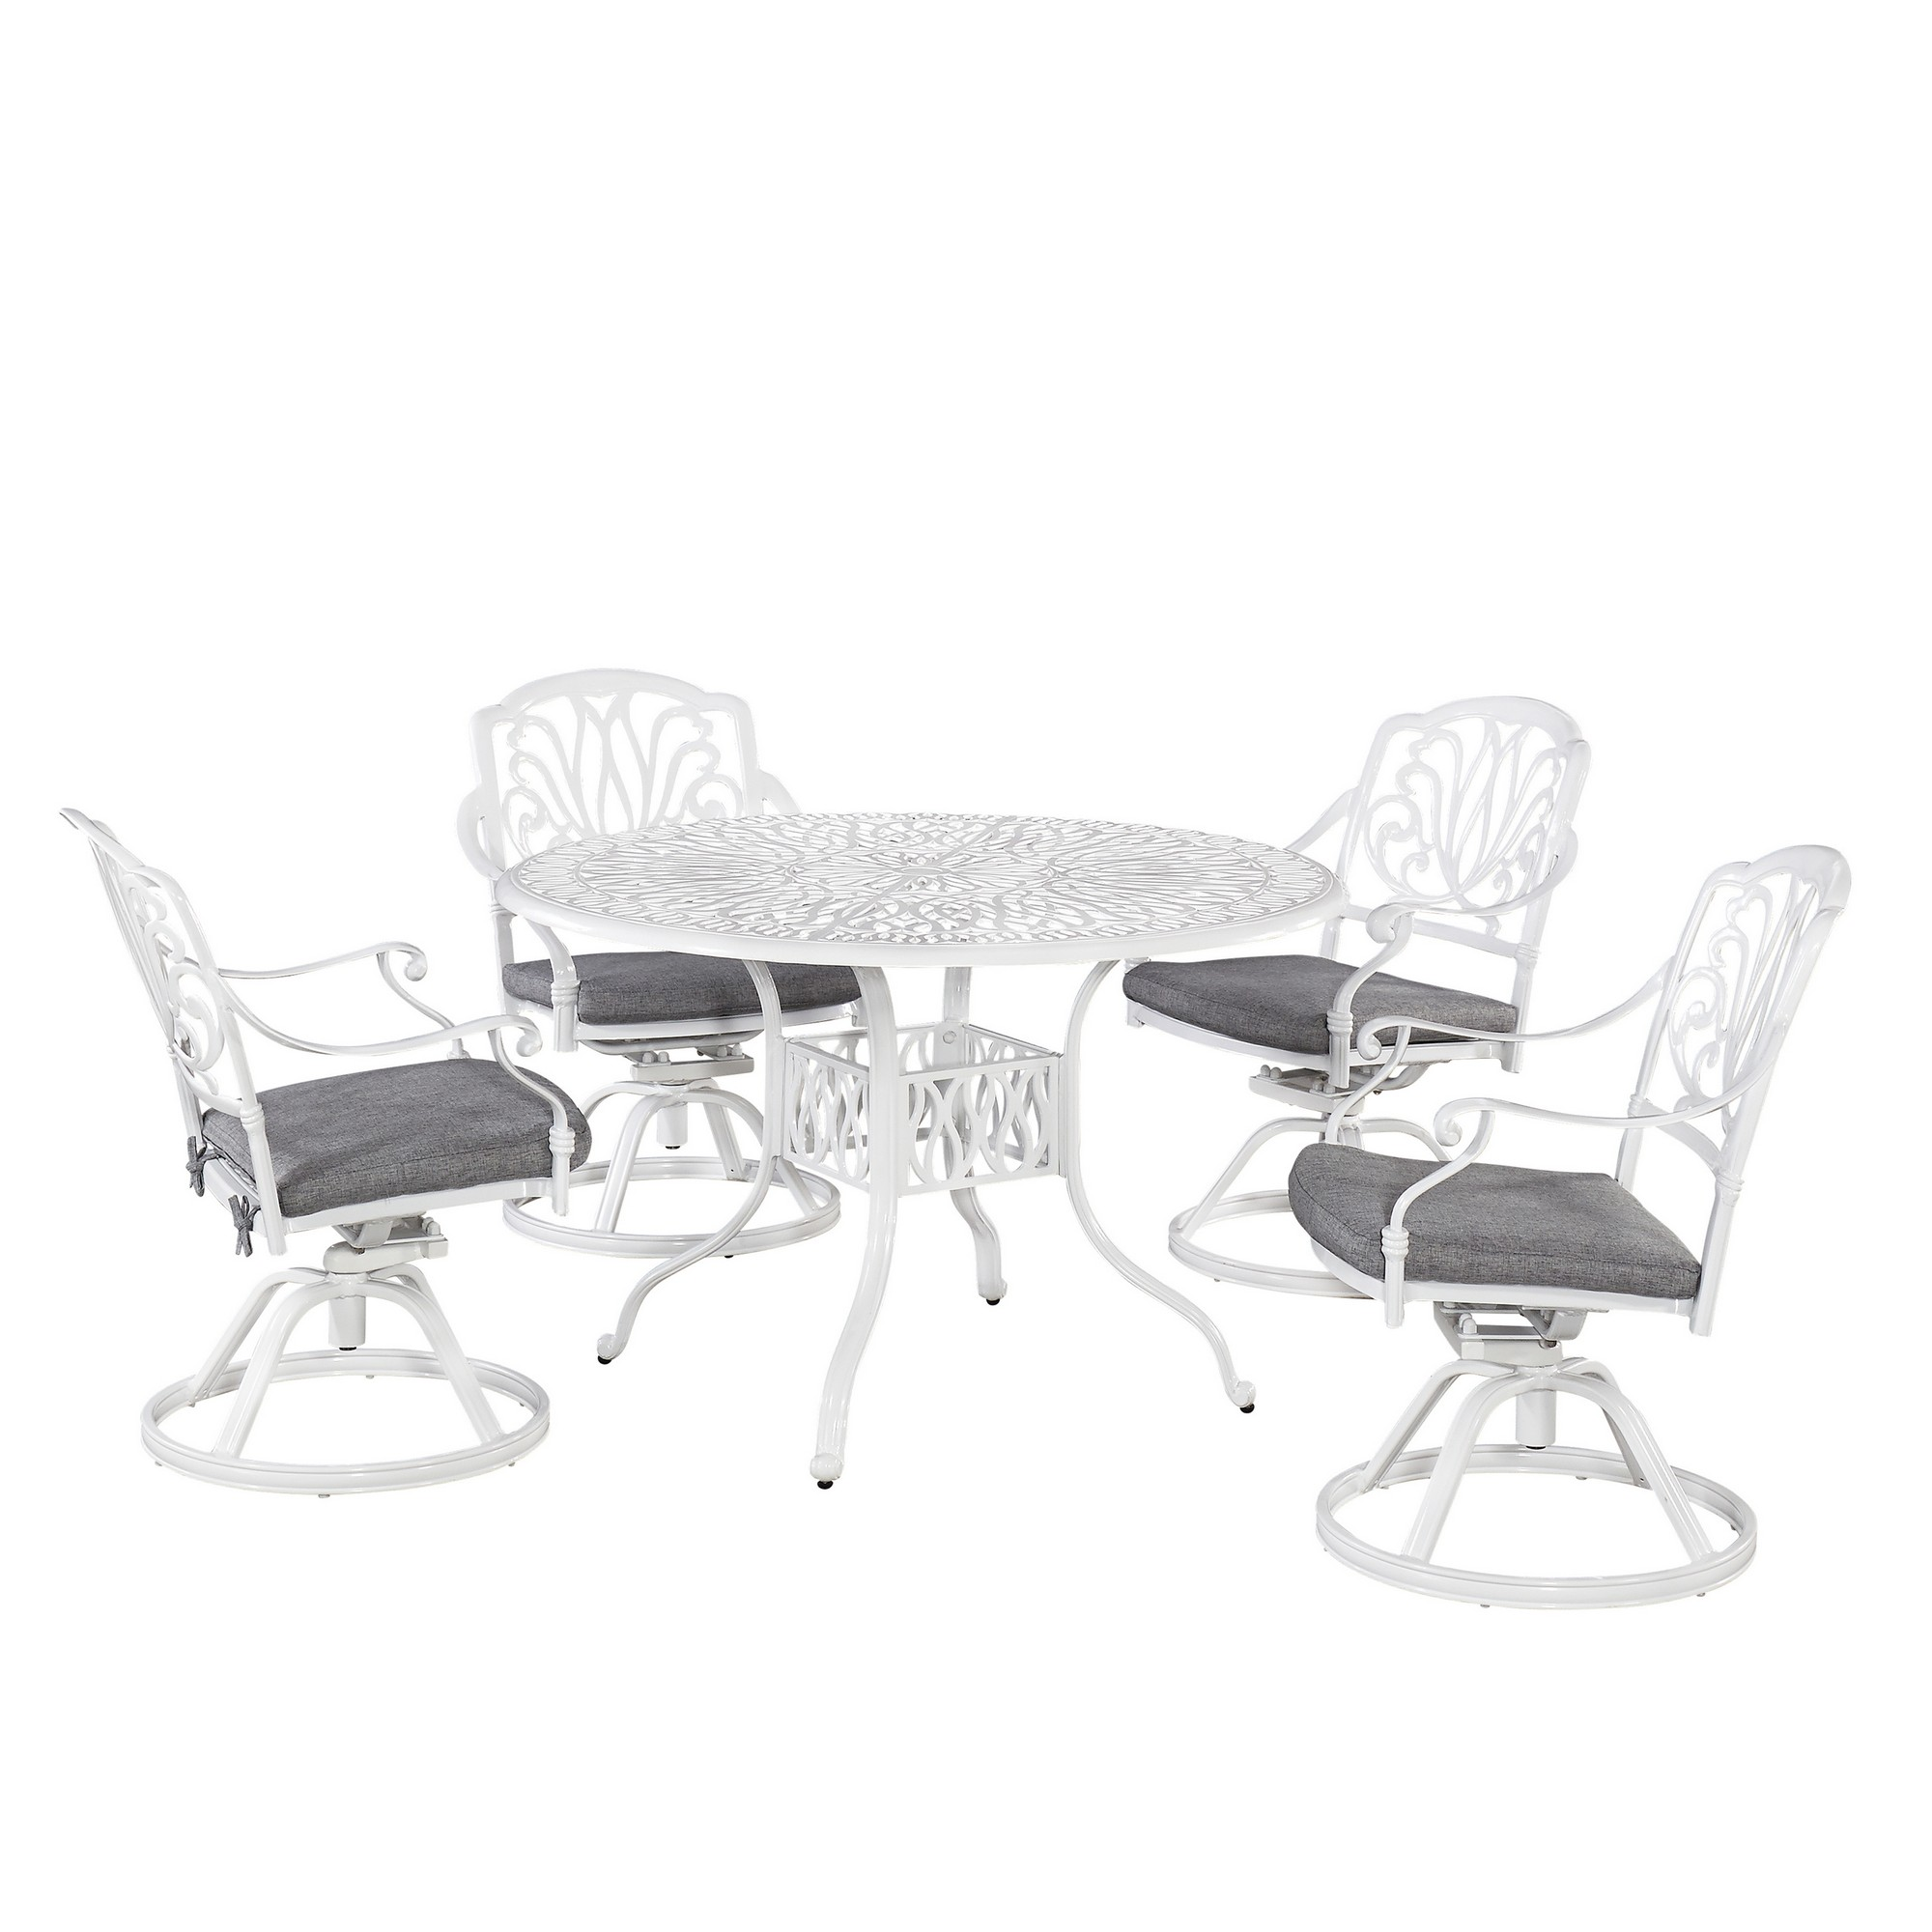 Capri 5 Piece Outdoor Dining Set by homestyles at Value City Furniture